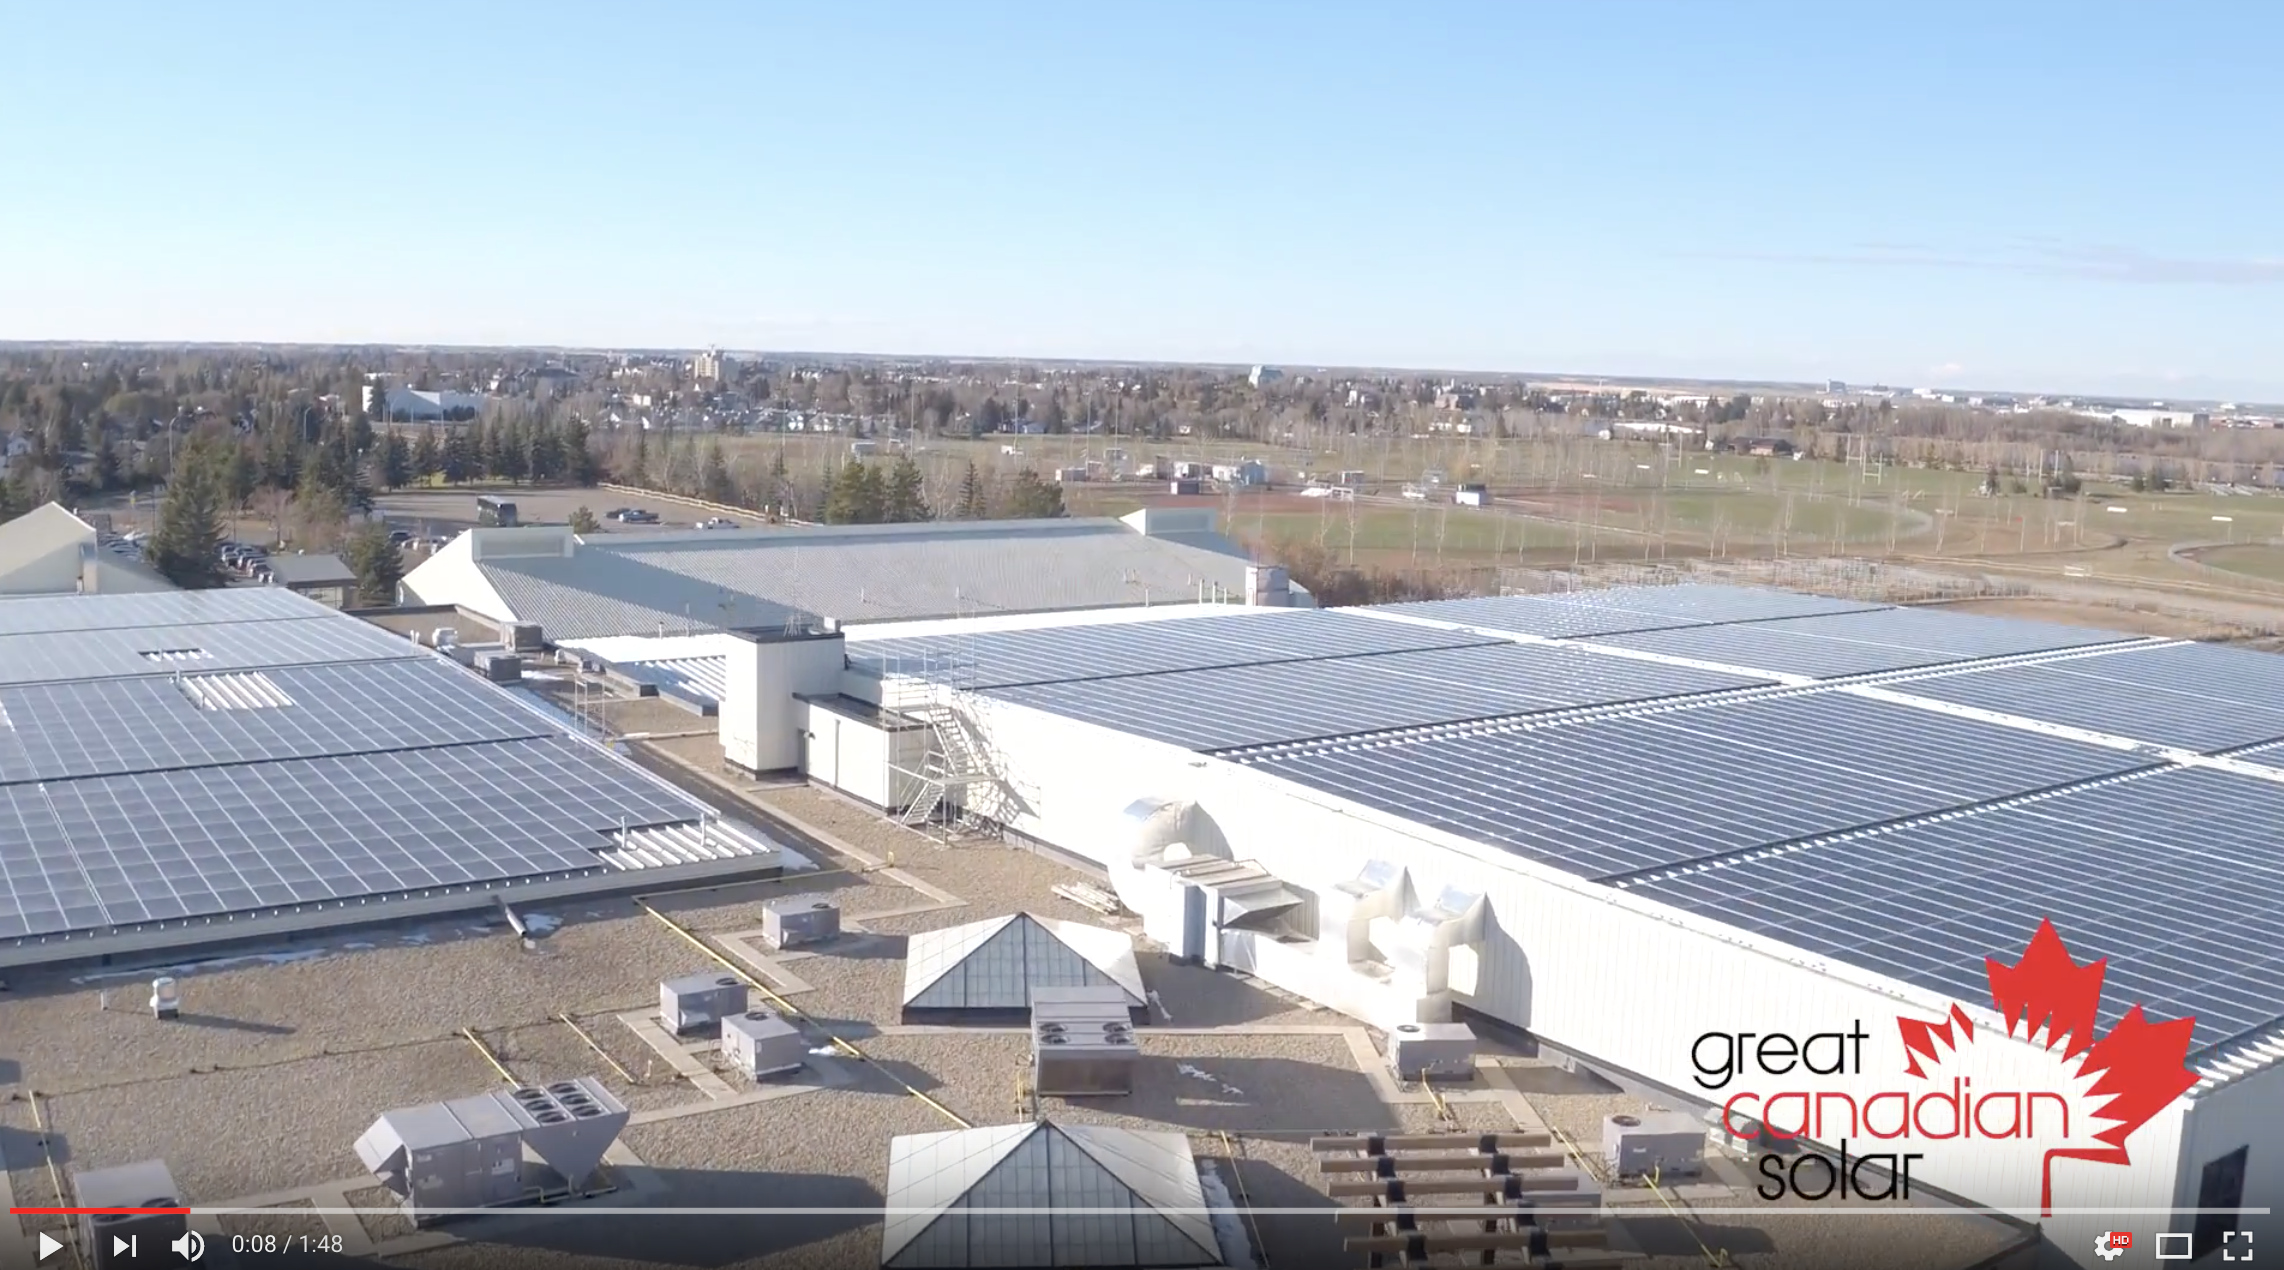 Great Canadian Solar Brand Video